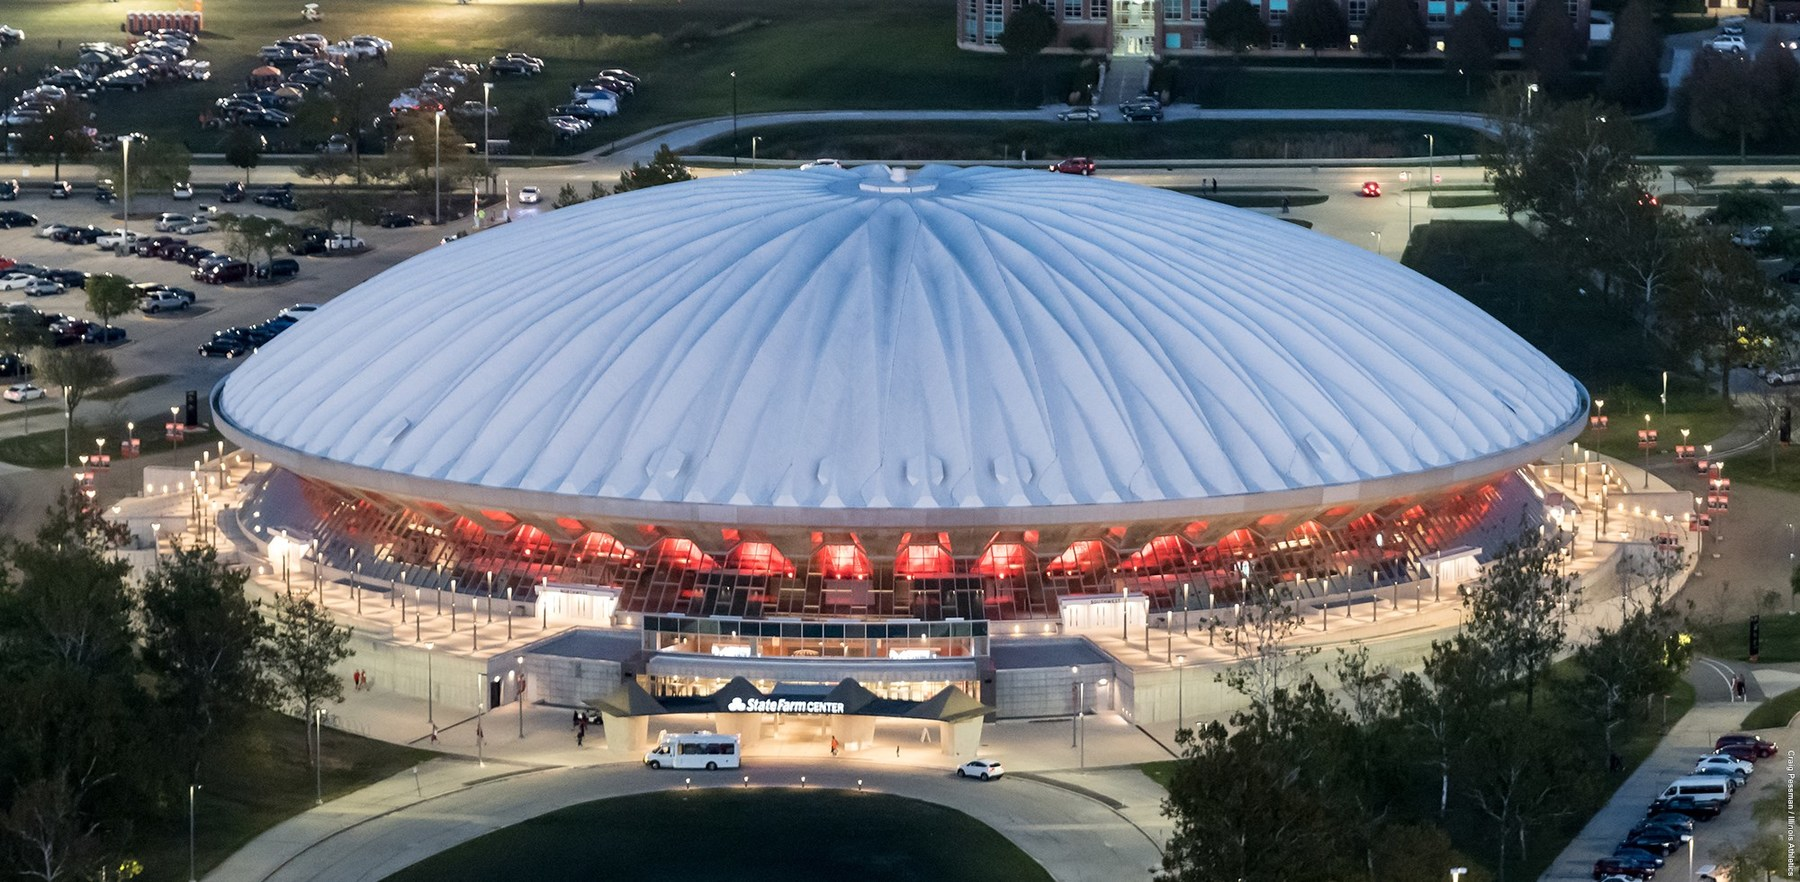 aerial view of State Farm Center